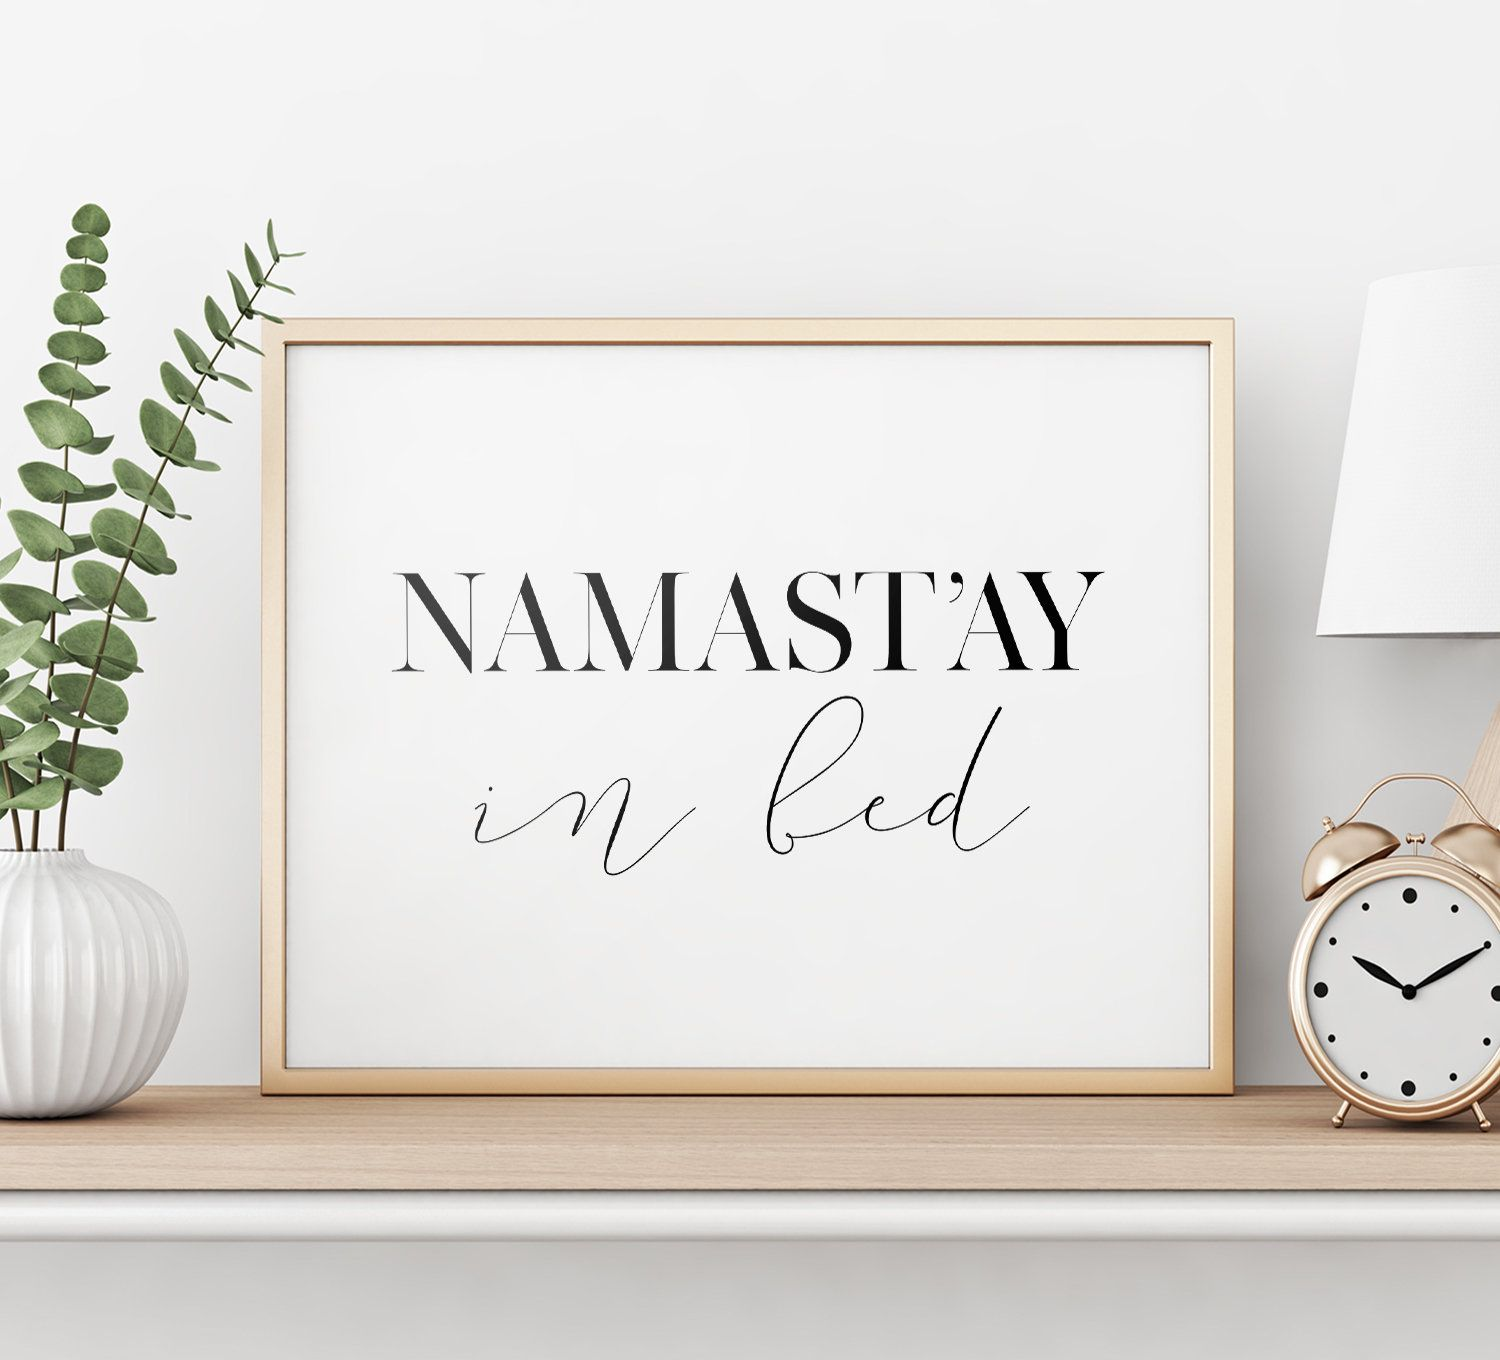 Namastay In Bed Printable Poster, Bedroom Decor